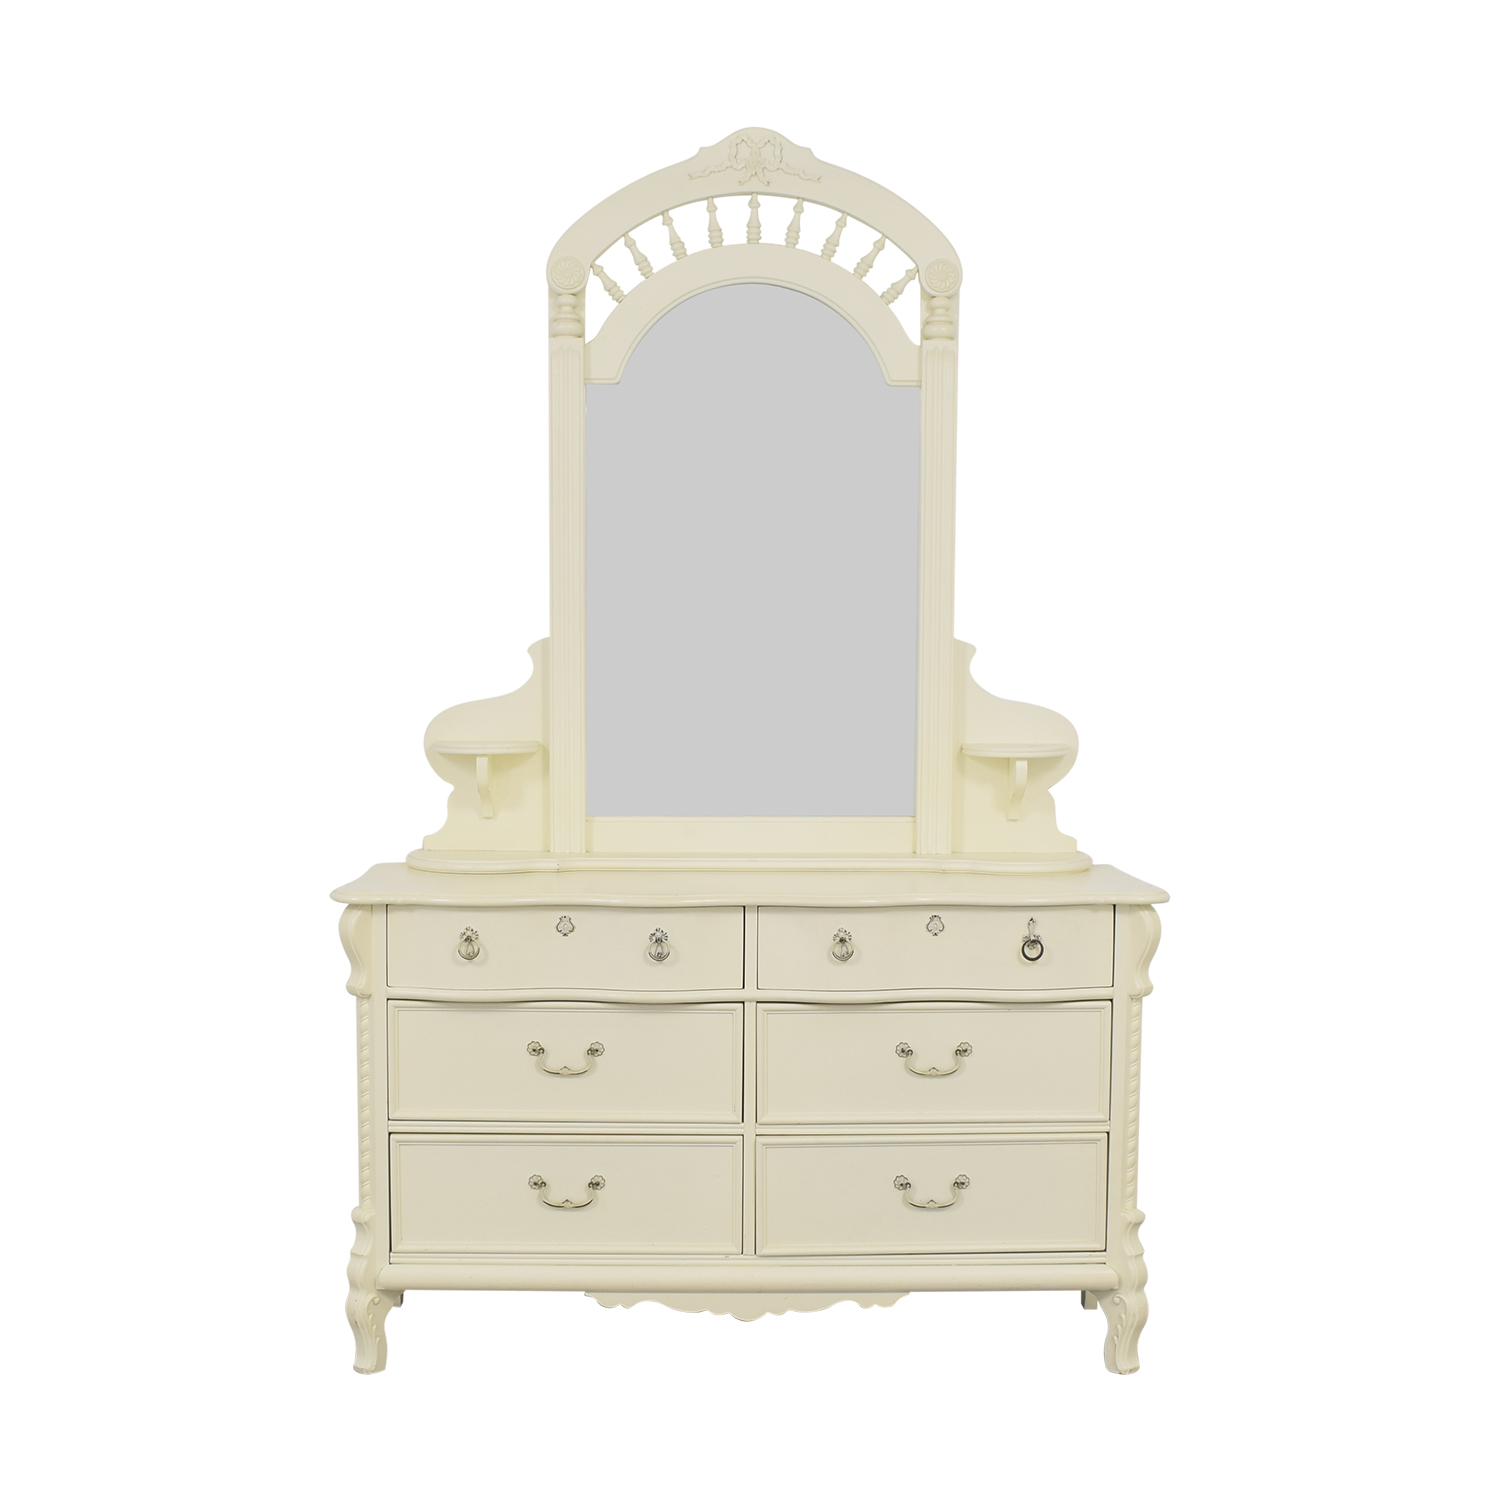 Lexington Furniture Lexington Furniture Dresser with Mirror pa